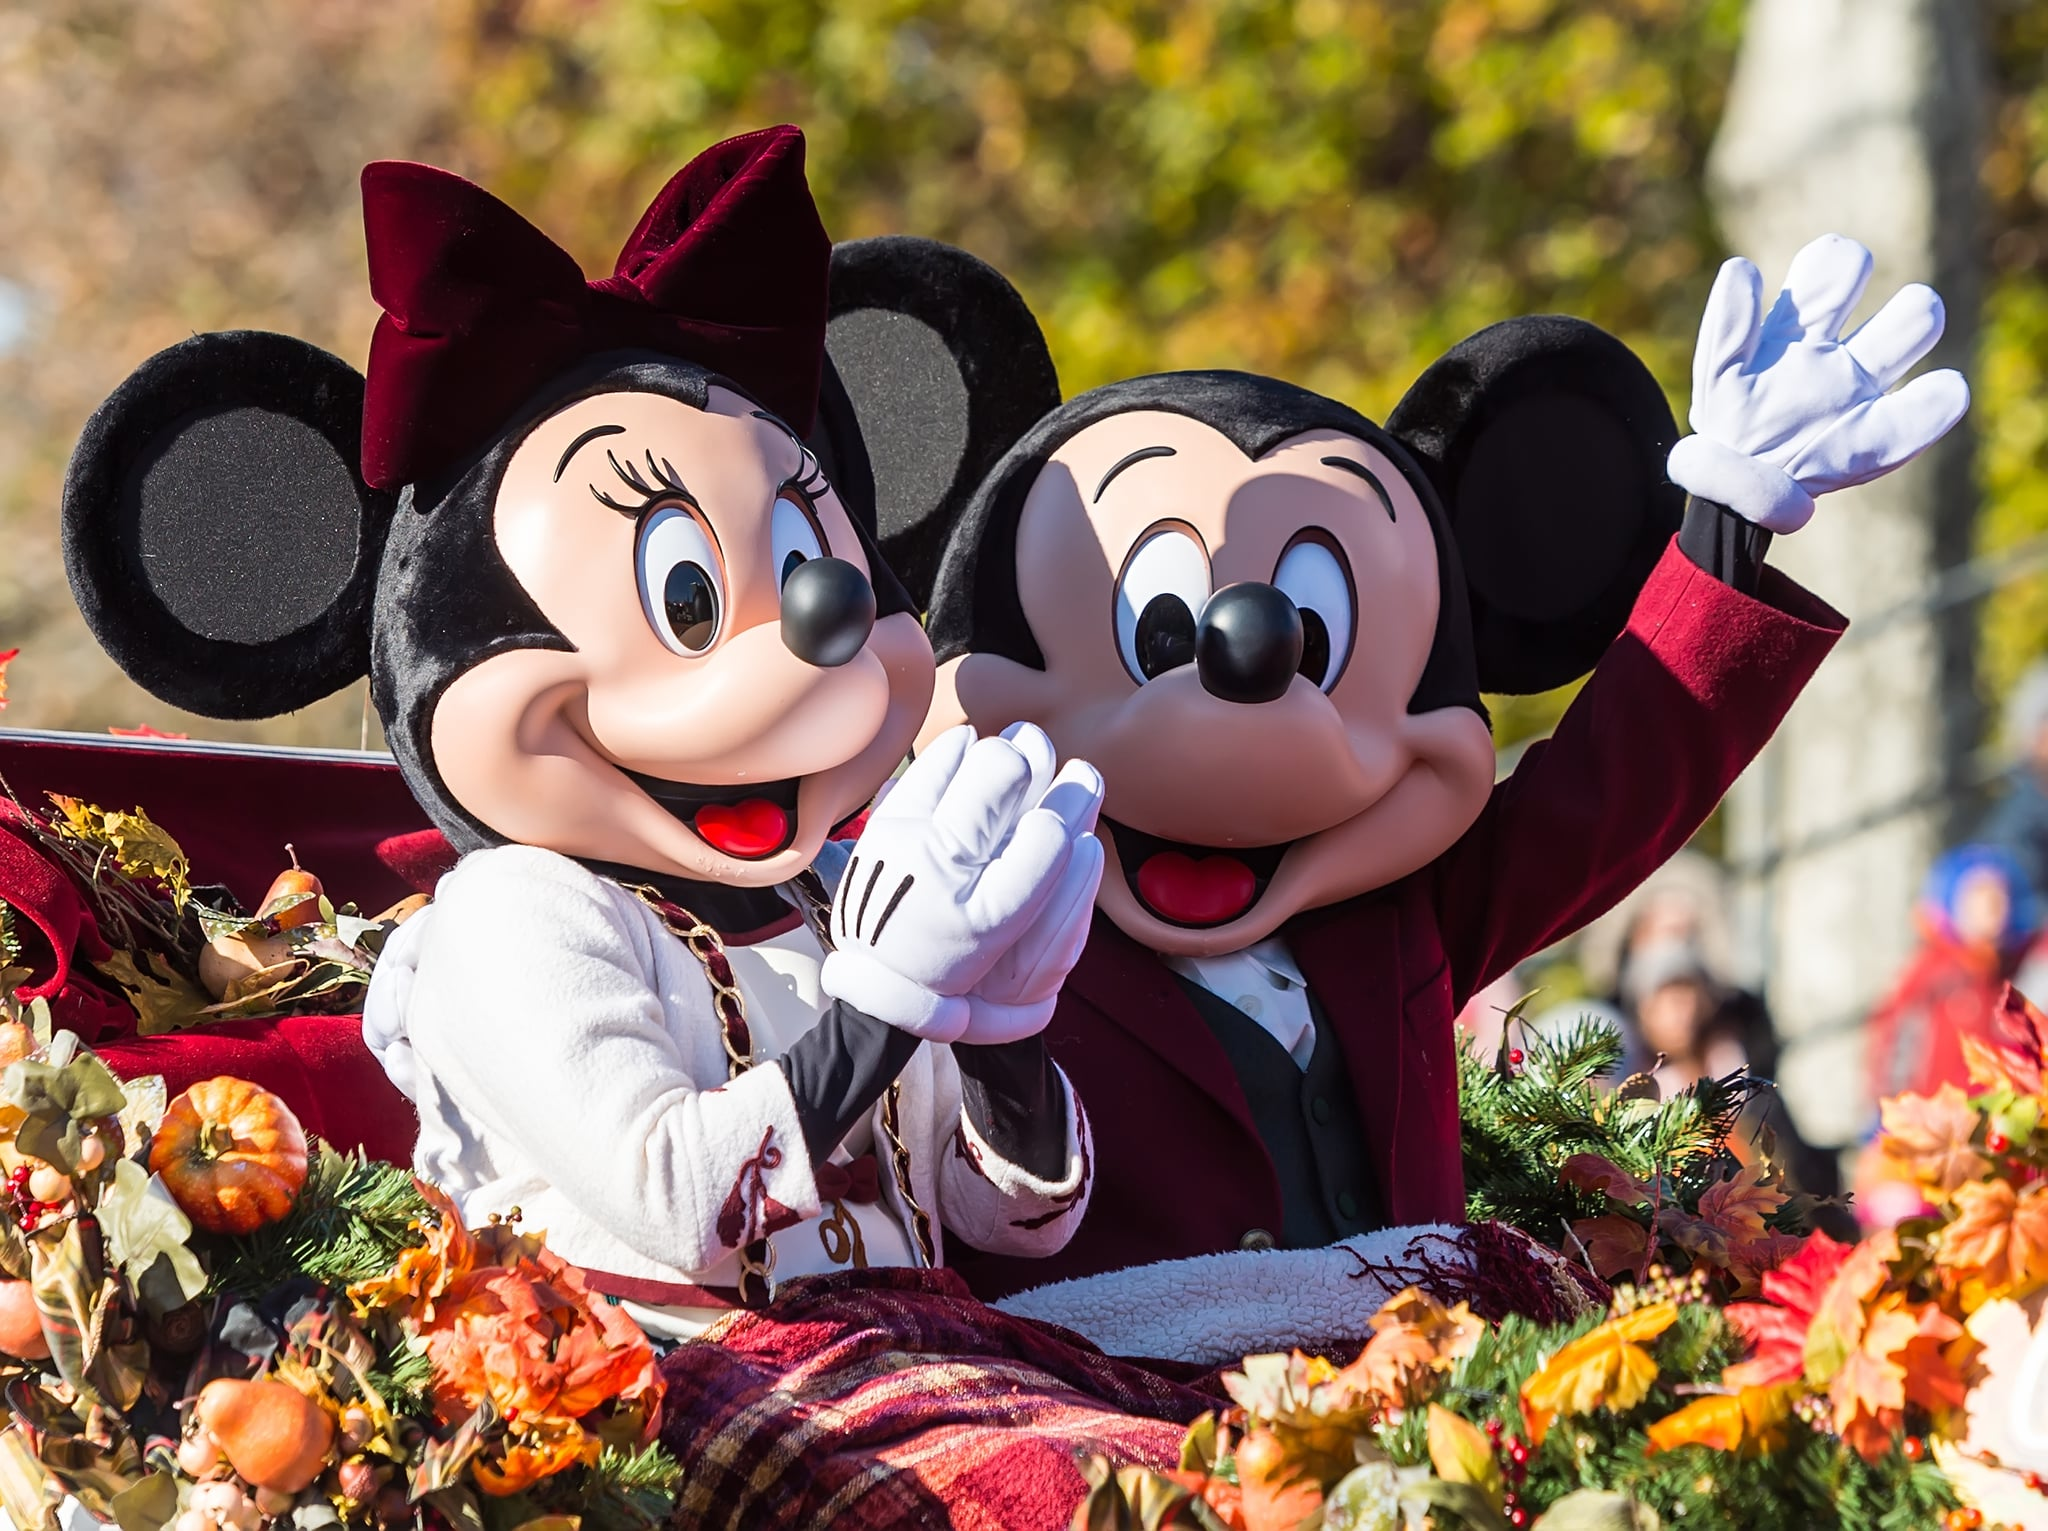 PHILADELPHIA, PA - NOVEMBER 22:  Walt Disney characters Minnie Mouse and Mickey Mouse attend the 99th Annual 6abc Dunkin' Donuts Thanksgiving Day Parade on November 22, 2018 in Philadelphia, Pennsylvania.  (Photo by Gilbert Carrasquillo/Getty Images)